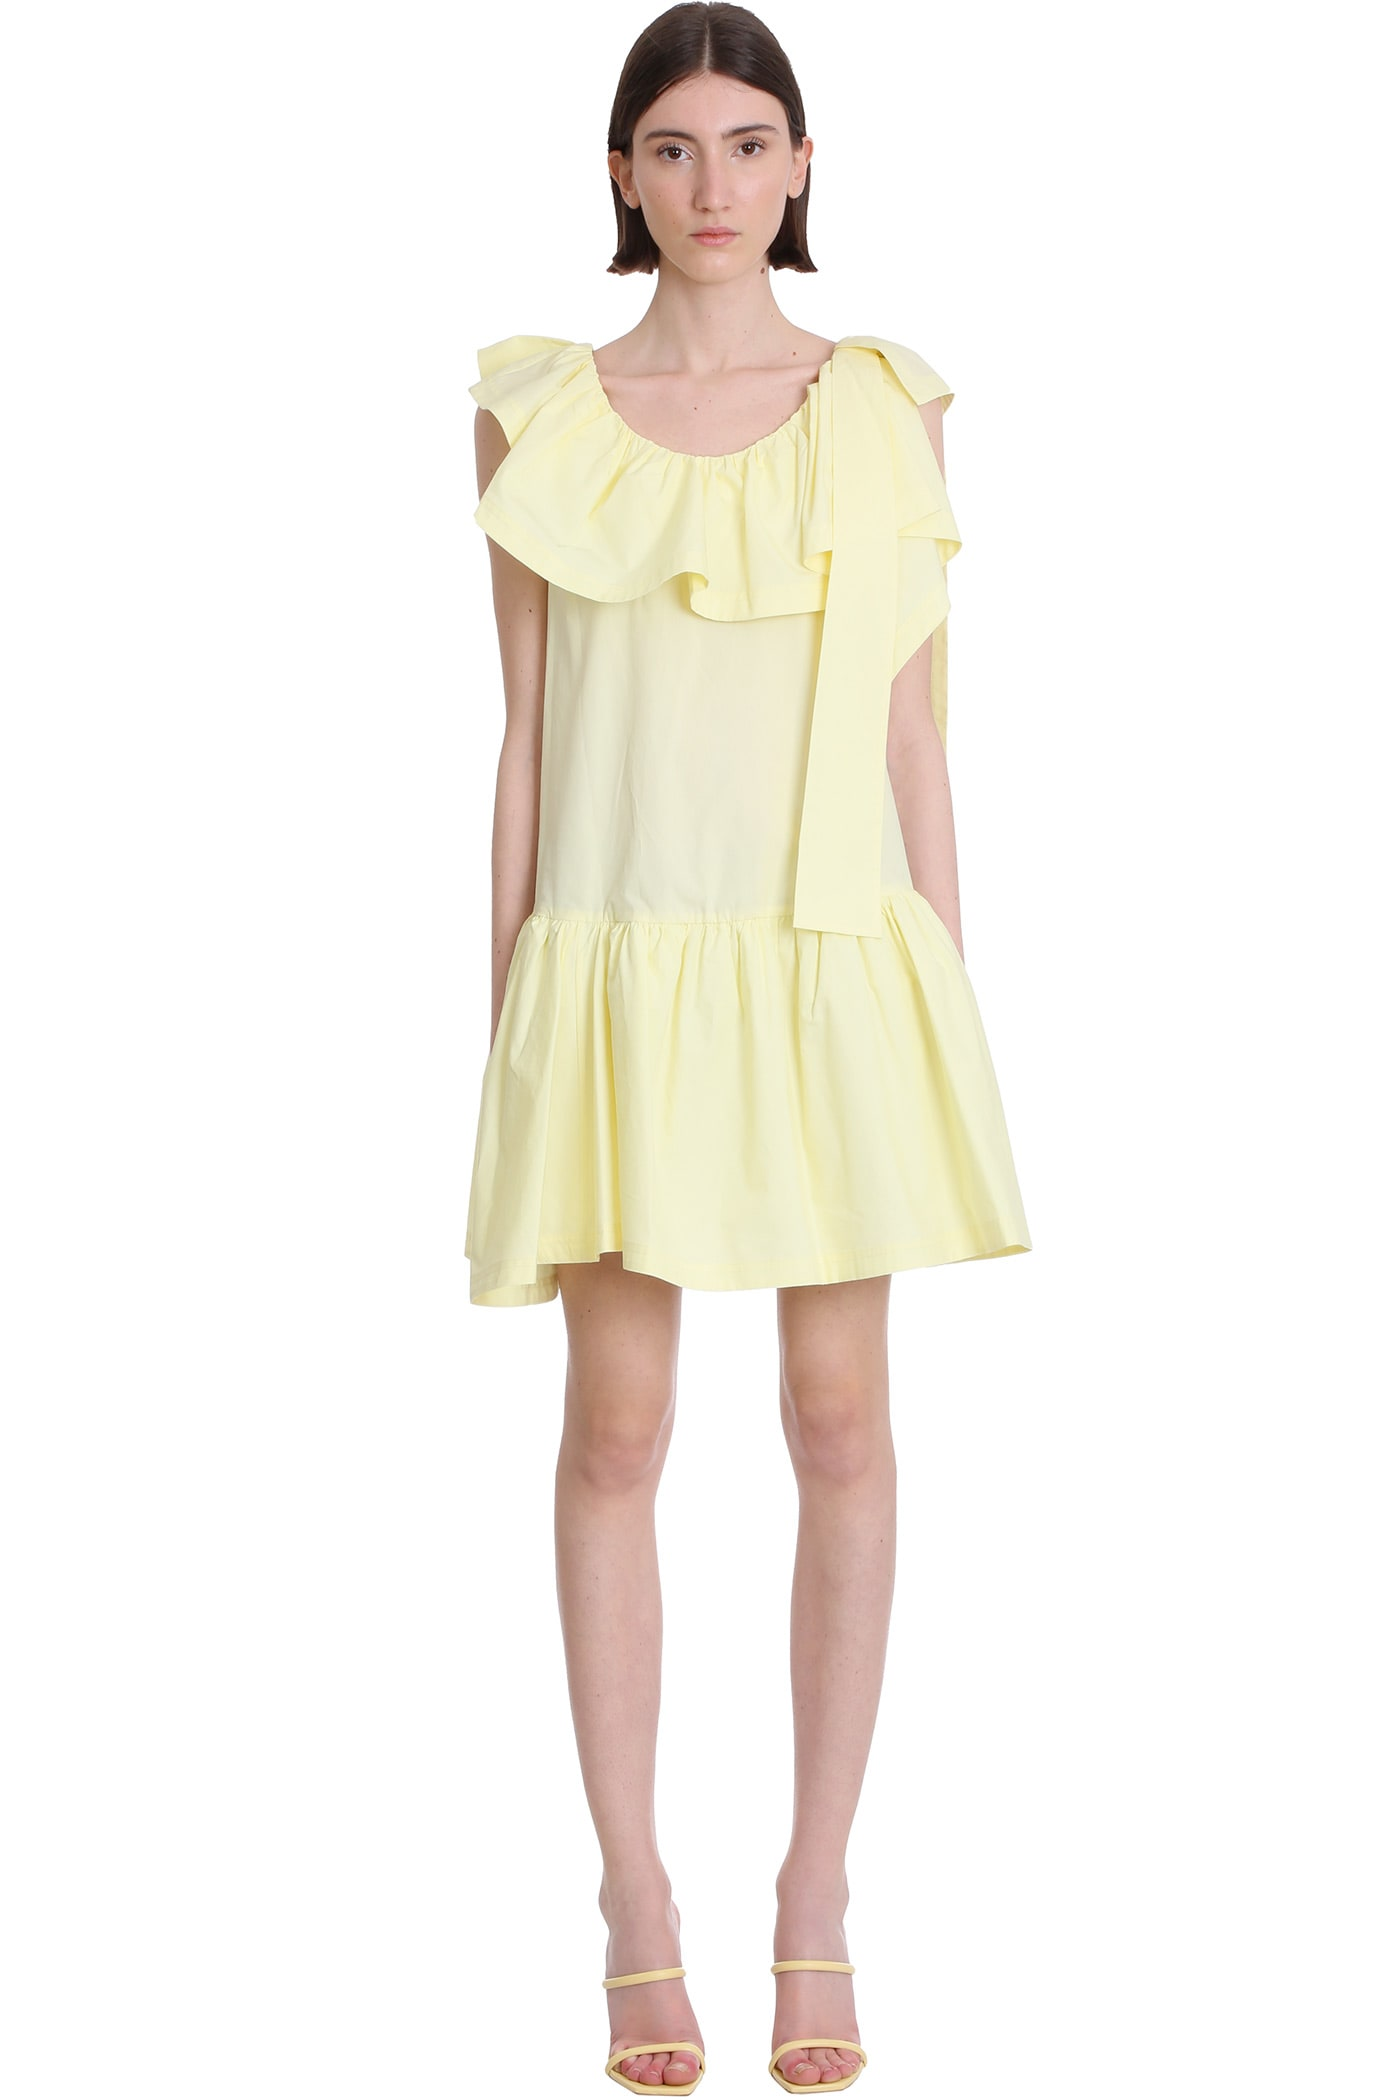 Buy 3.1 Phillip Lim Tent Dress In Yellow Cotton online, shop 3.1 Phillip Lim with free shipping